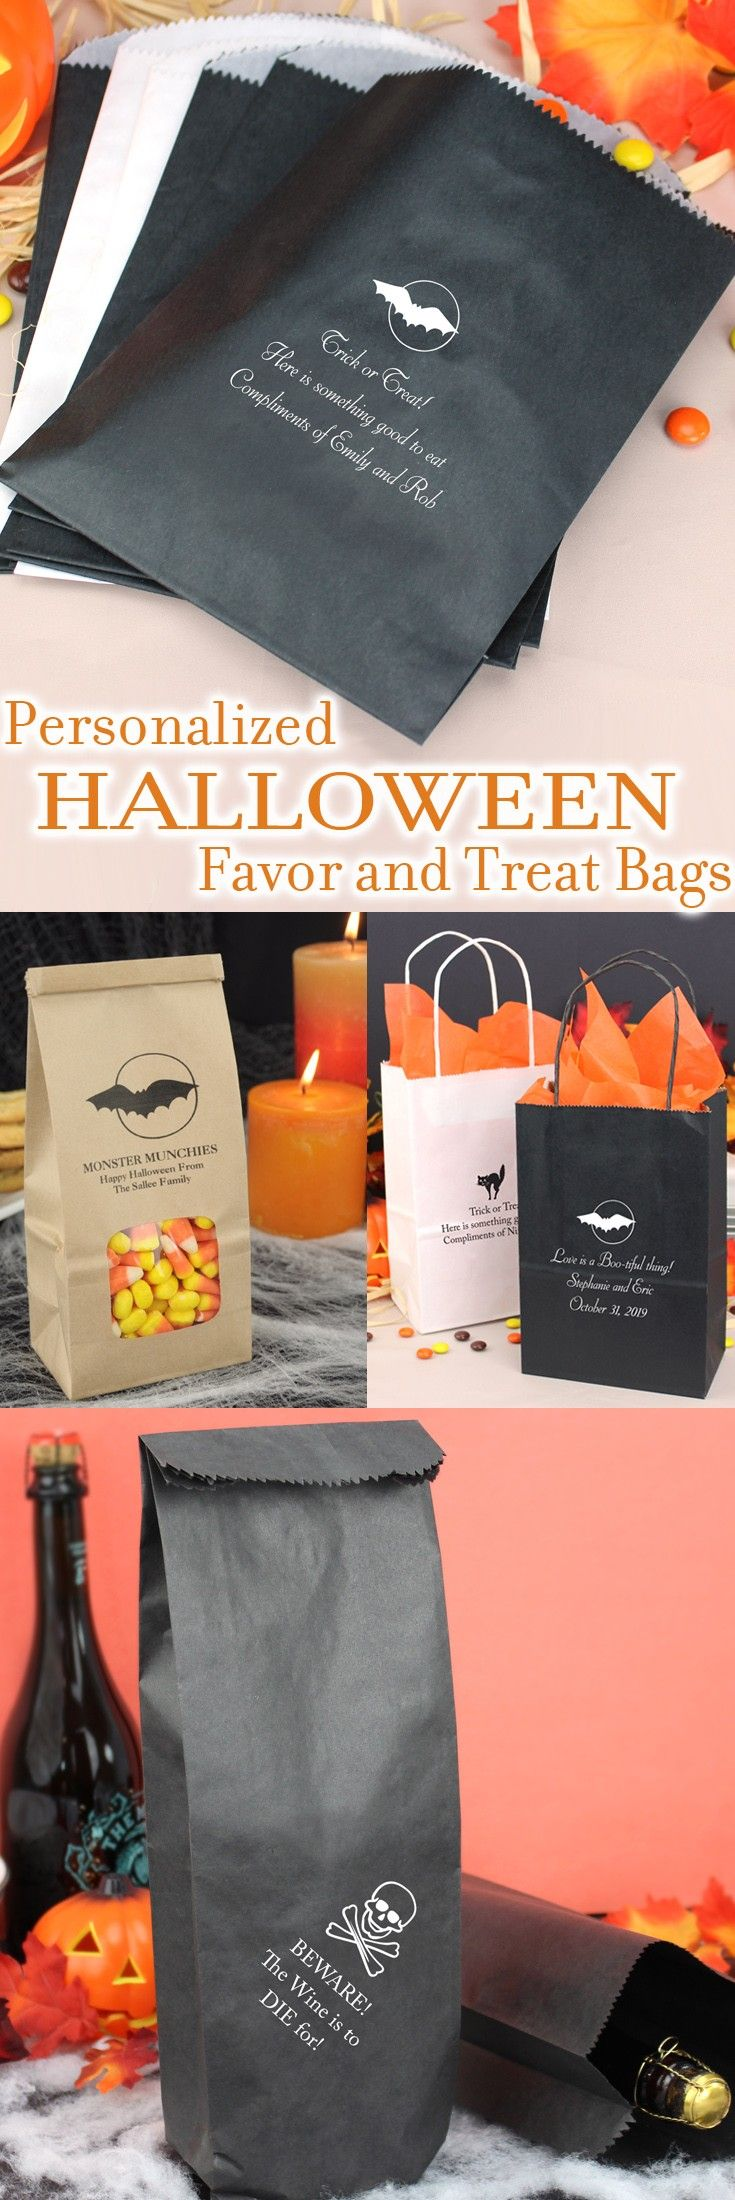 91 best Halloween Wedding Ideas images on Pinterest